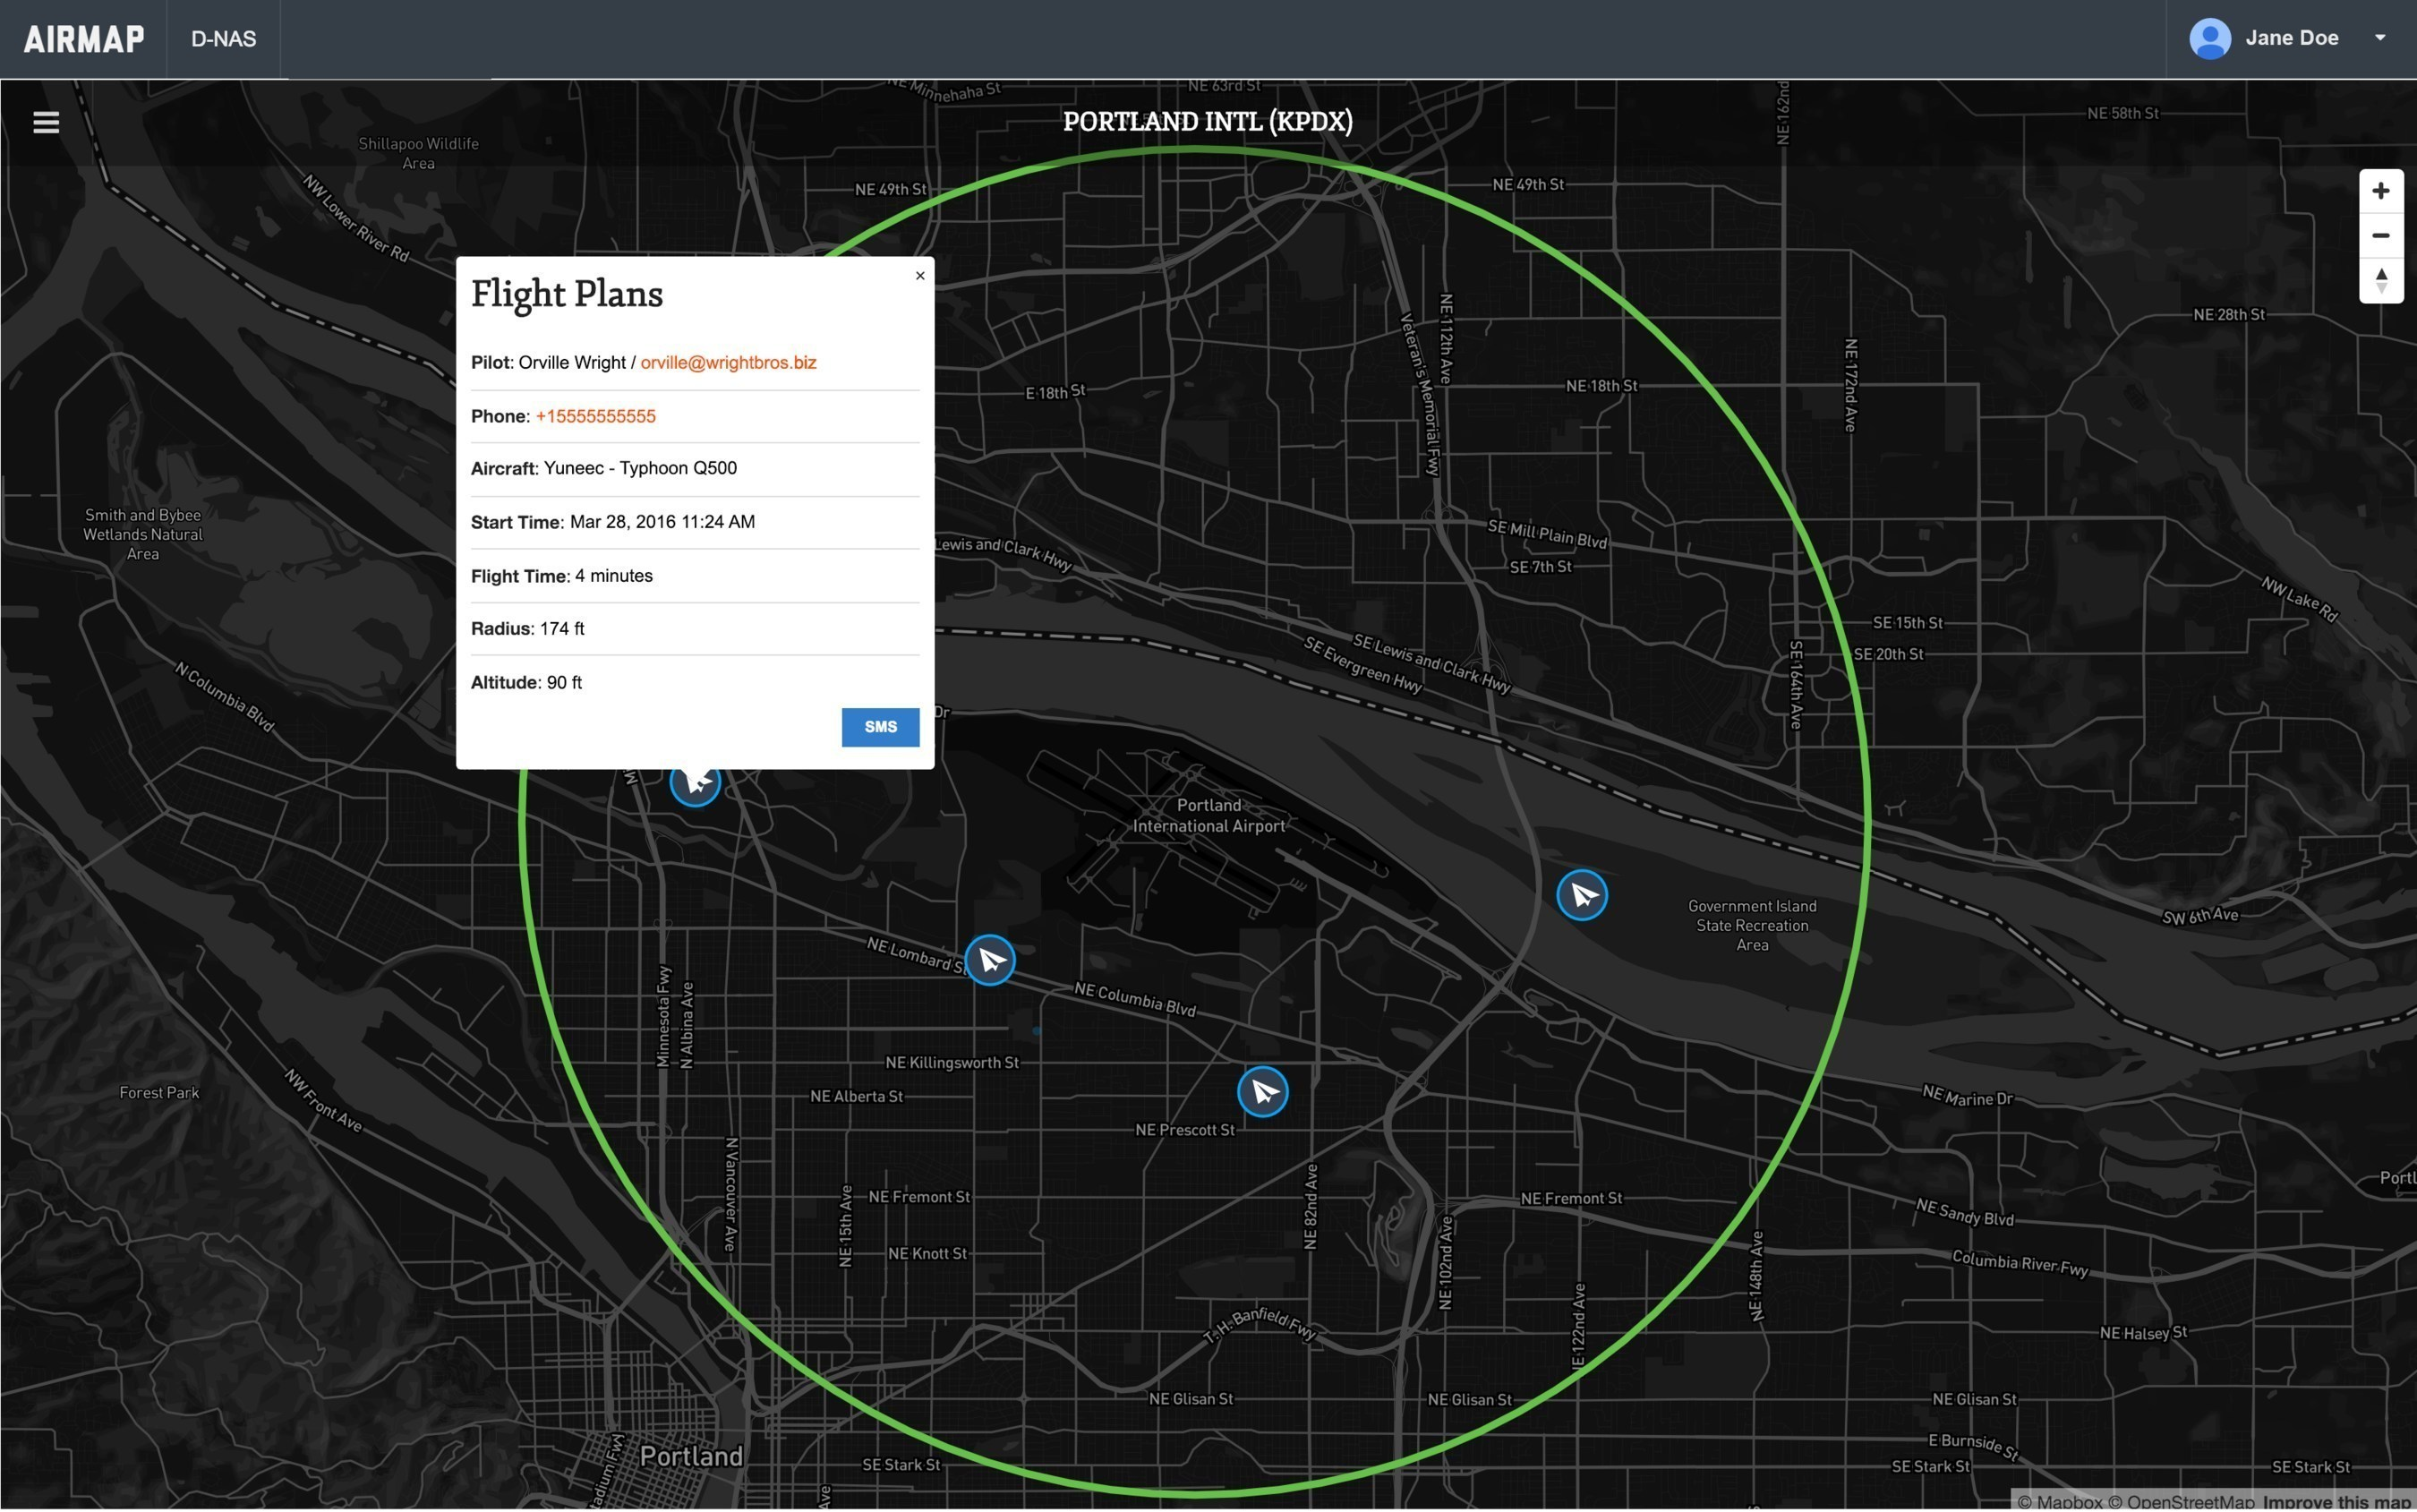 The AirMap Digital Notice and Awareness Dashboard(TM) map view.